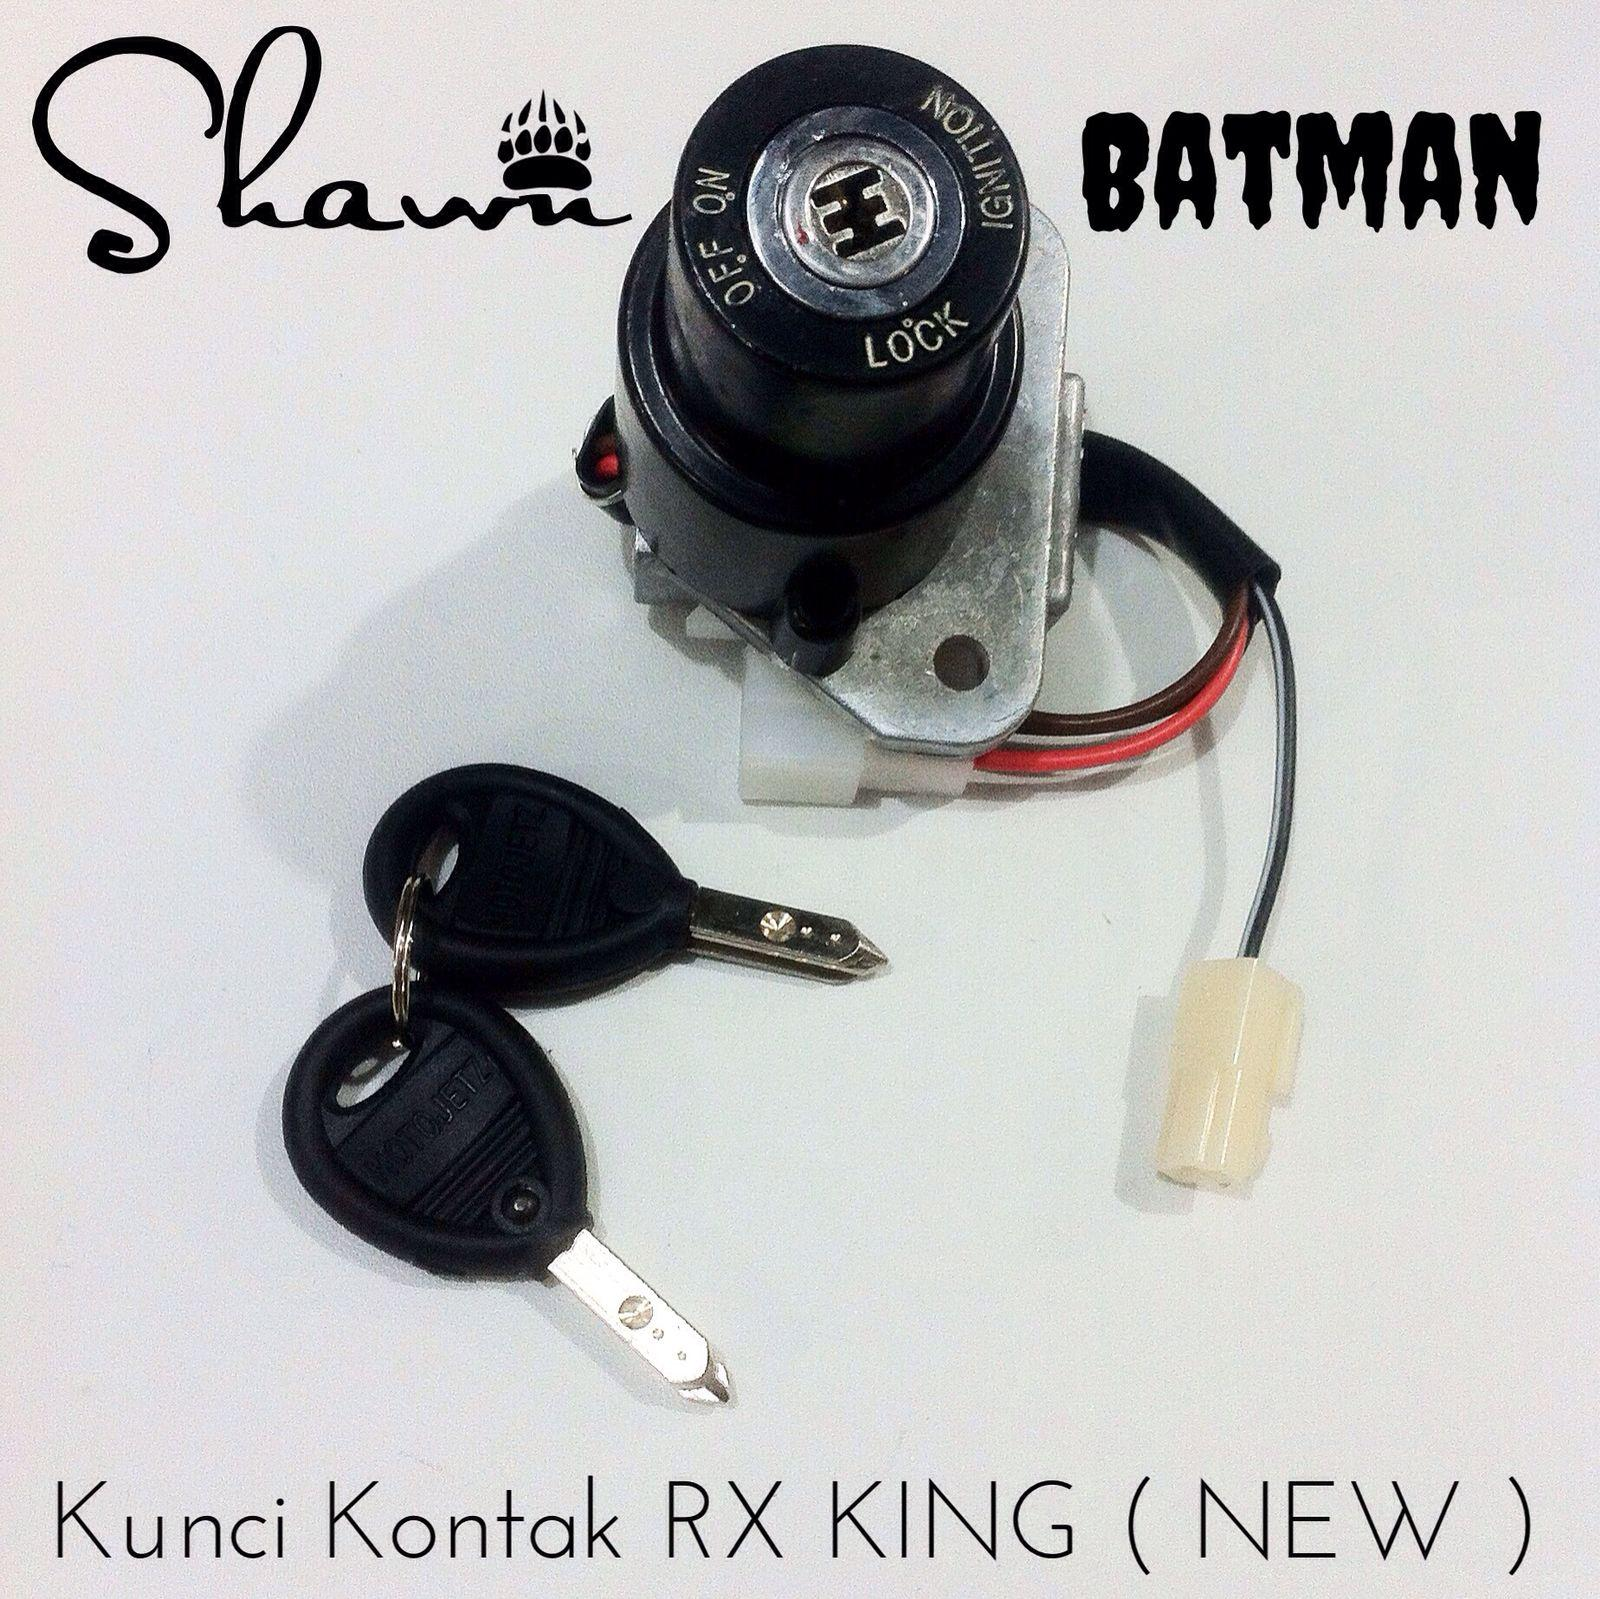 Kunci Kontak RX King New - Original